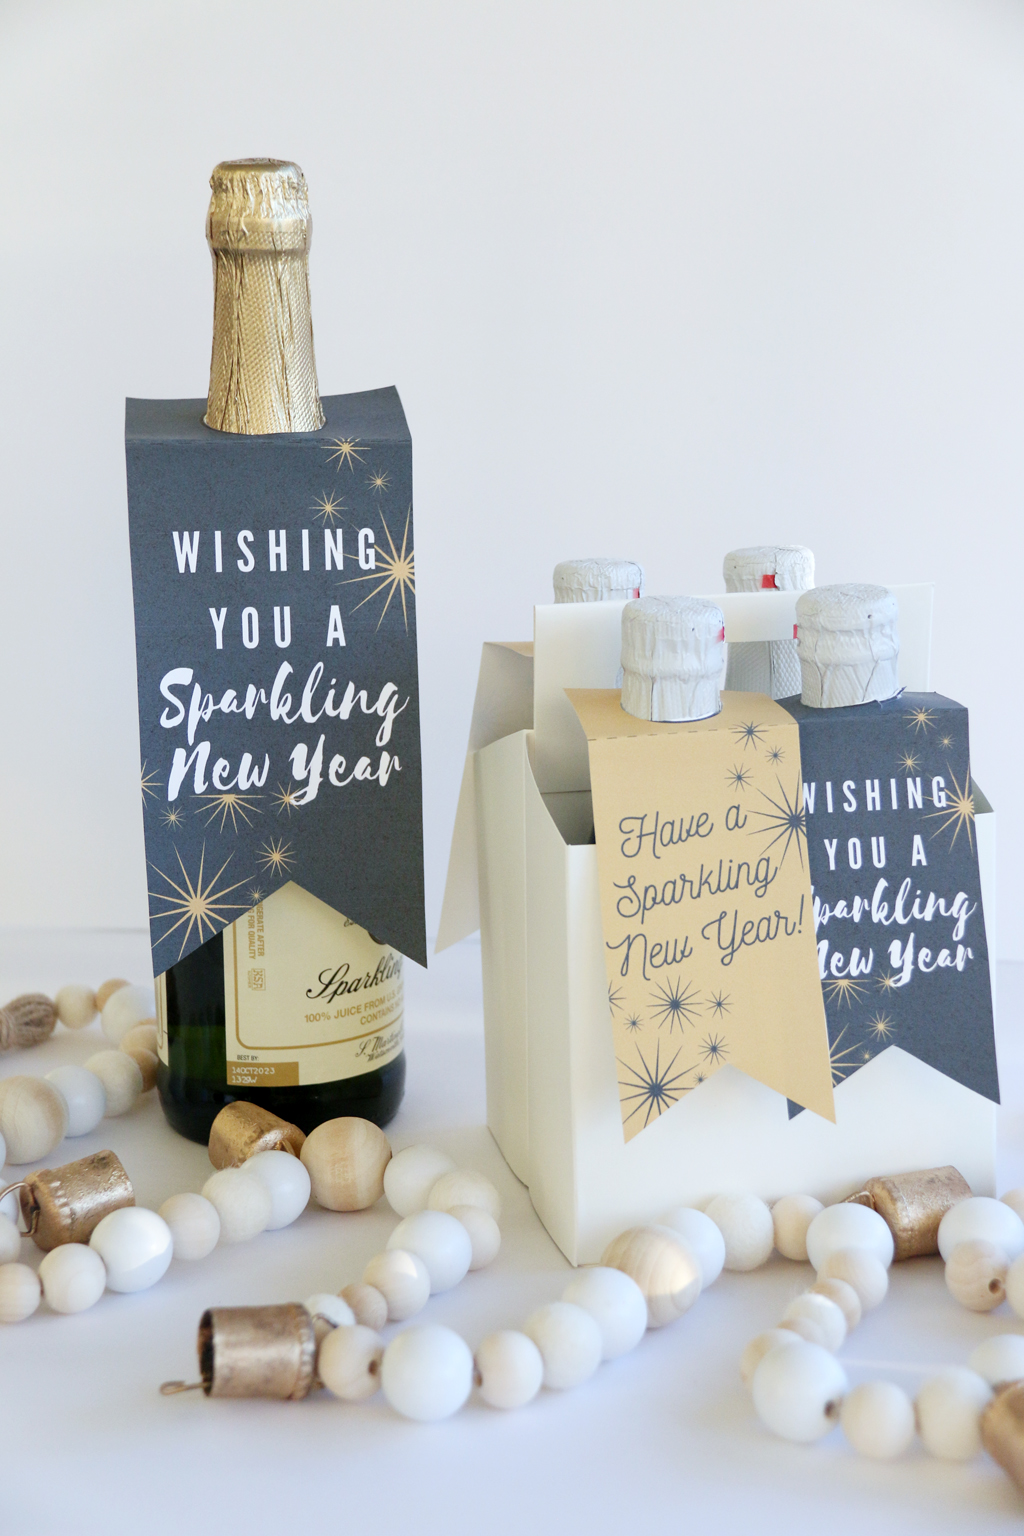 One large and drink caddy full of small bottles of Sparkling cider with New Year Sparkling Cider Gift Tags